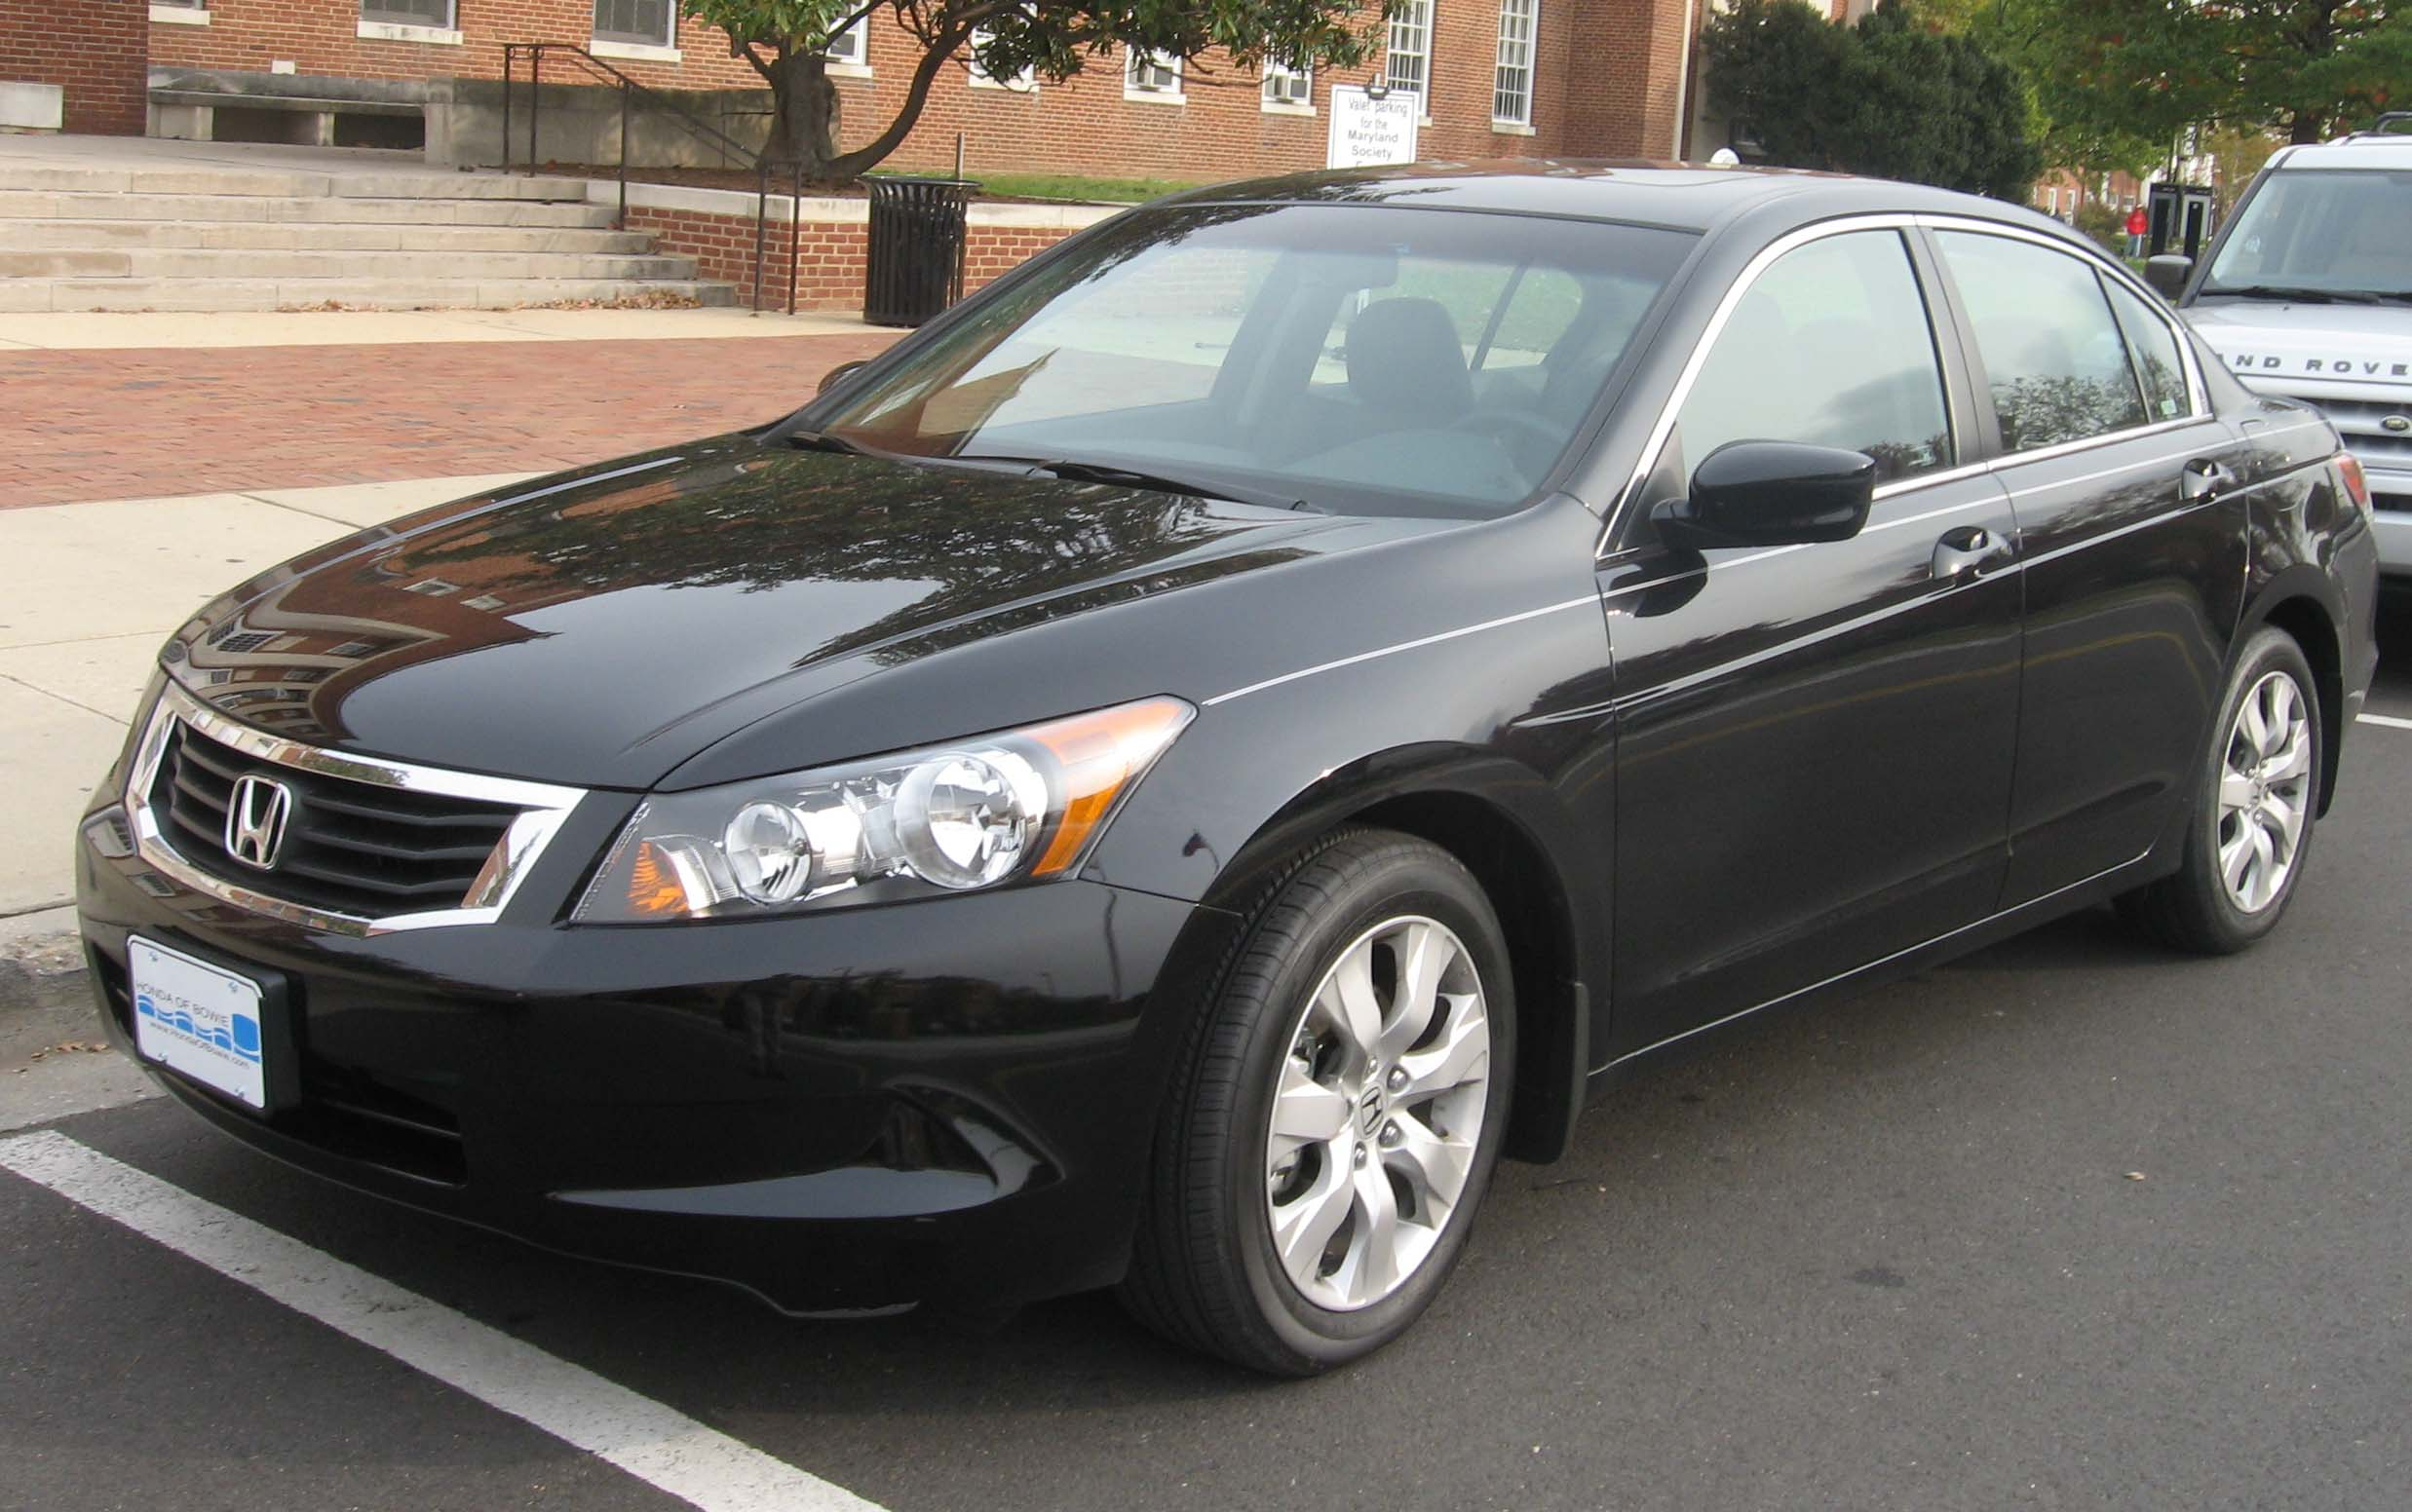 Honda accord 2007 4 honda accord 2007 4